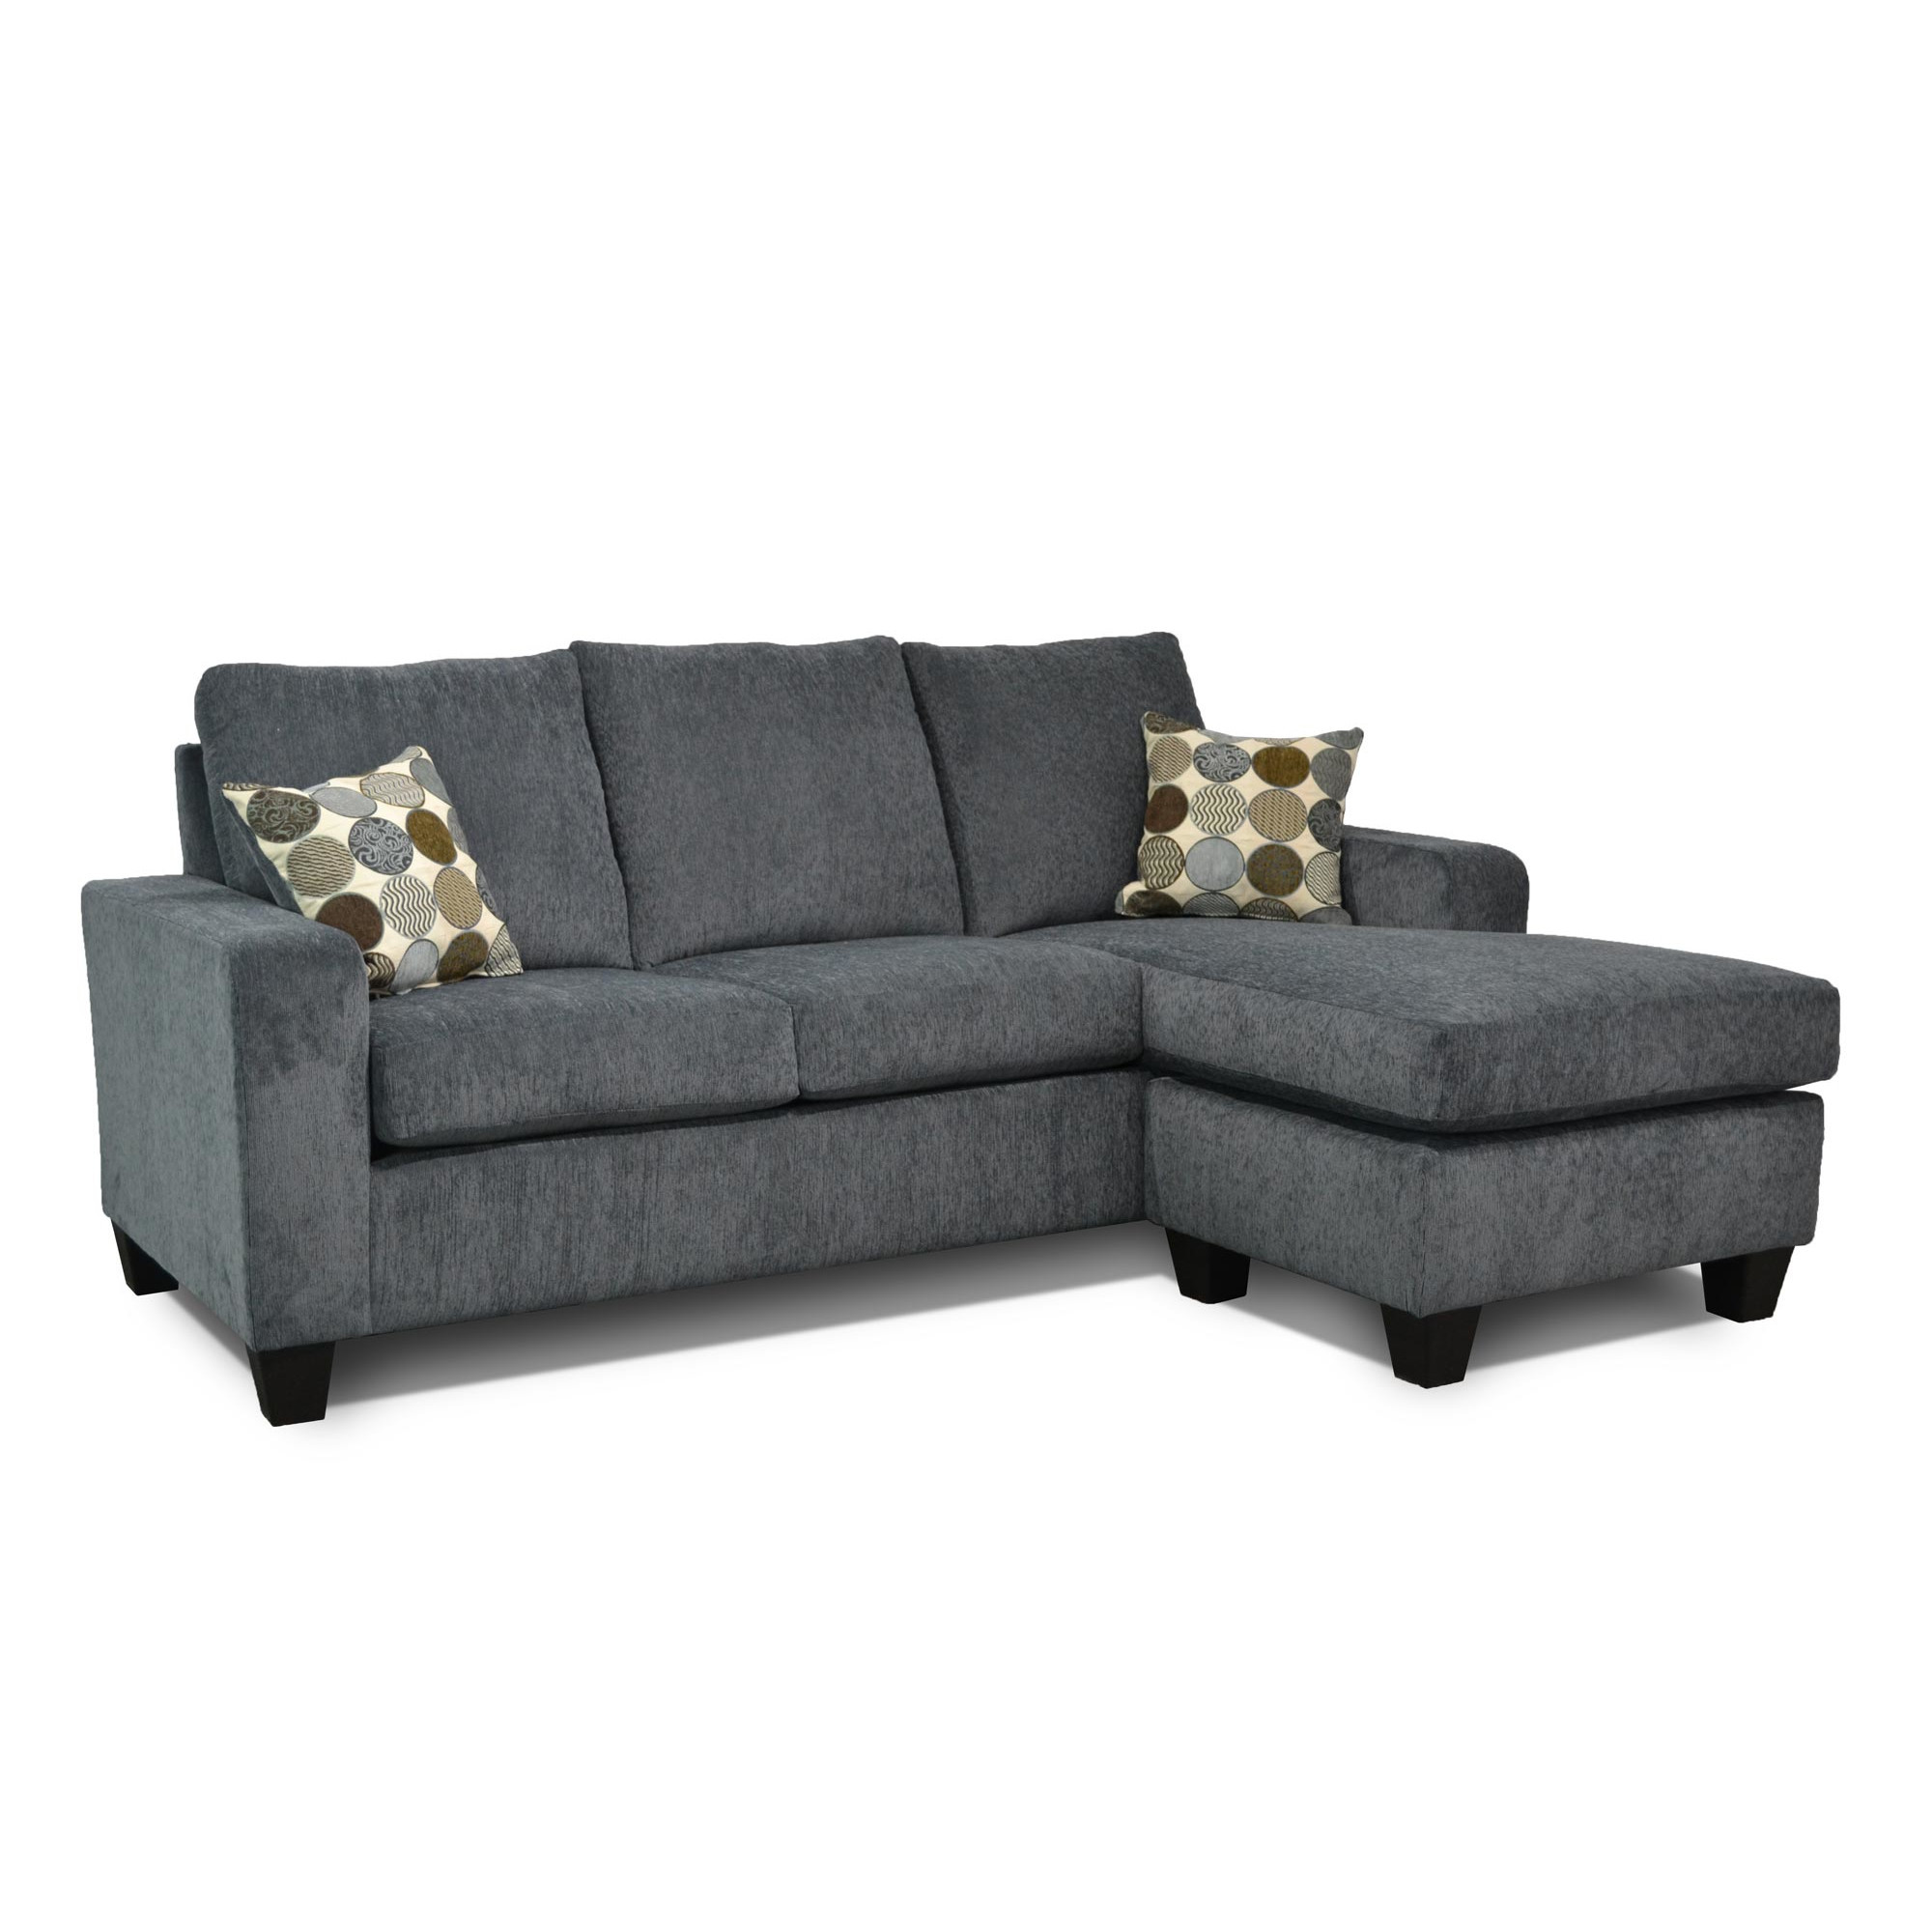 Best ideas about Wayfair Sectional Sofa . Save or Pin Mercury Row Morpheus Reversible Sectional & Reviews Now.